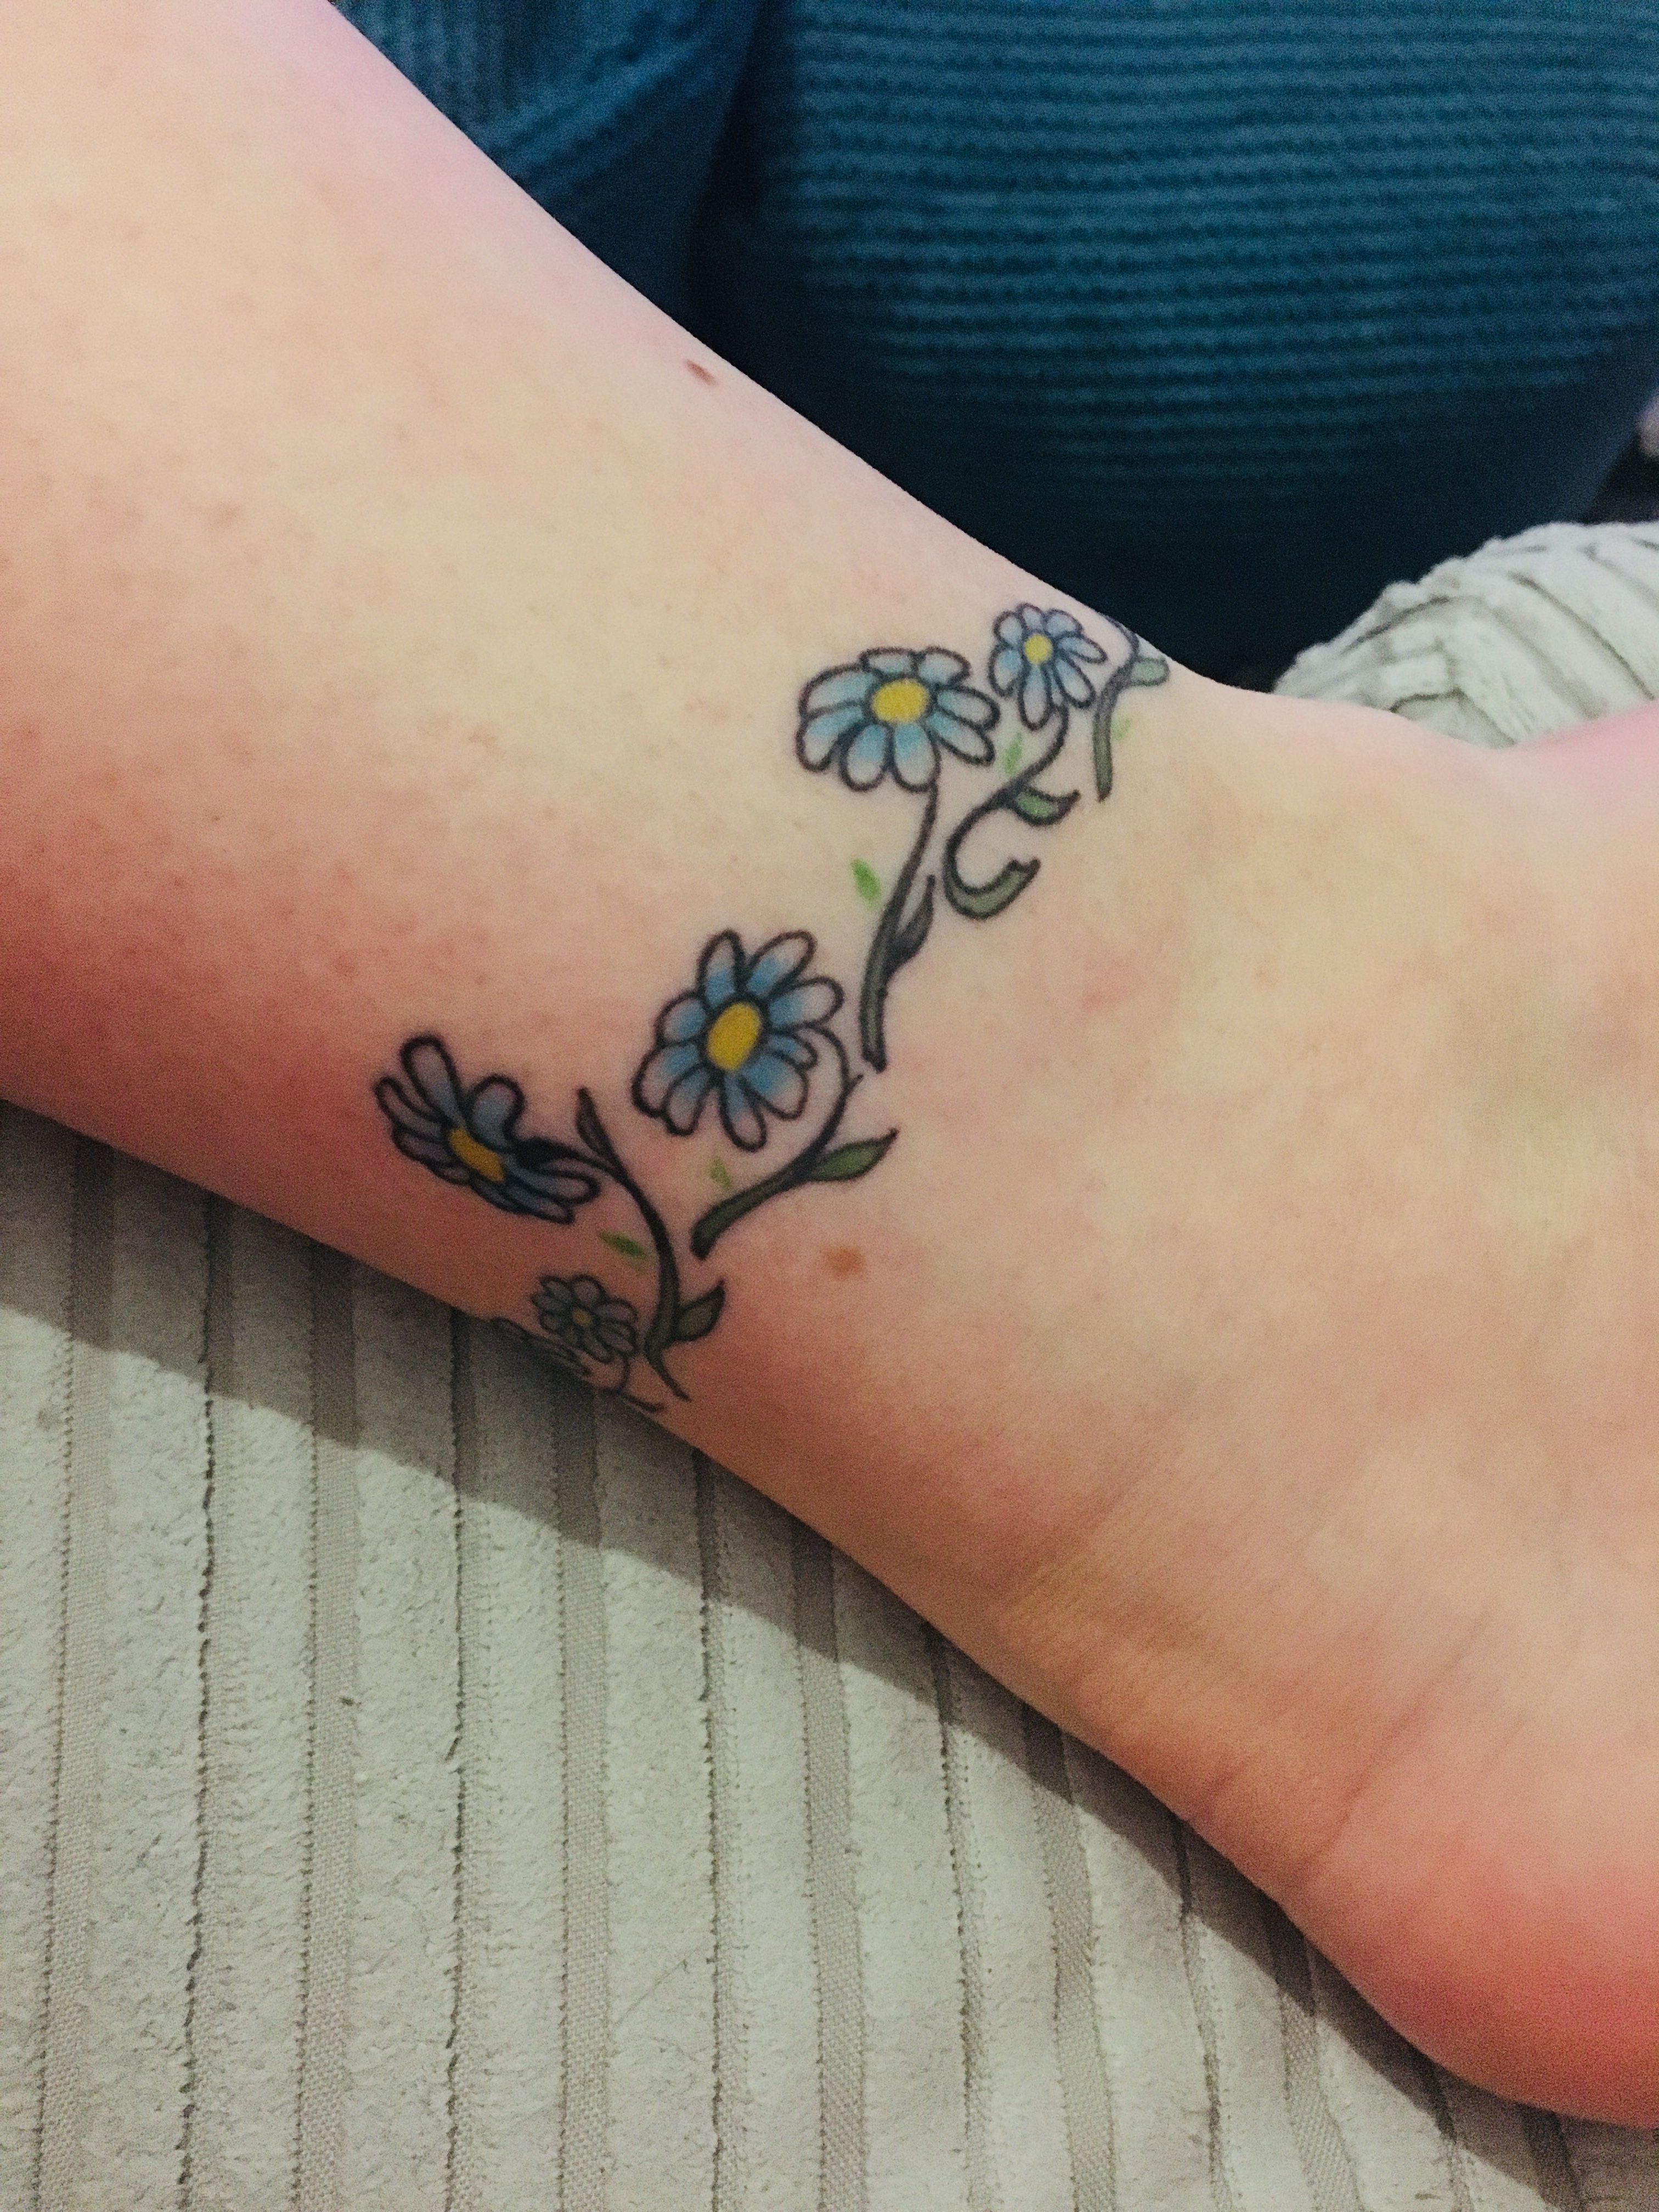 Daisy chain Chain tattoo, Tattoos, Name tattoos